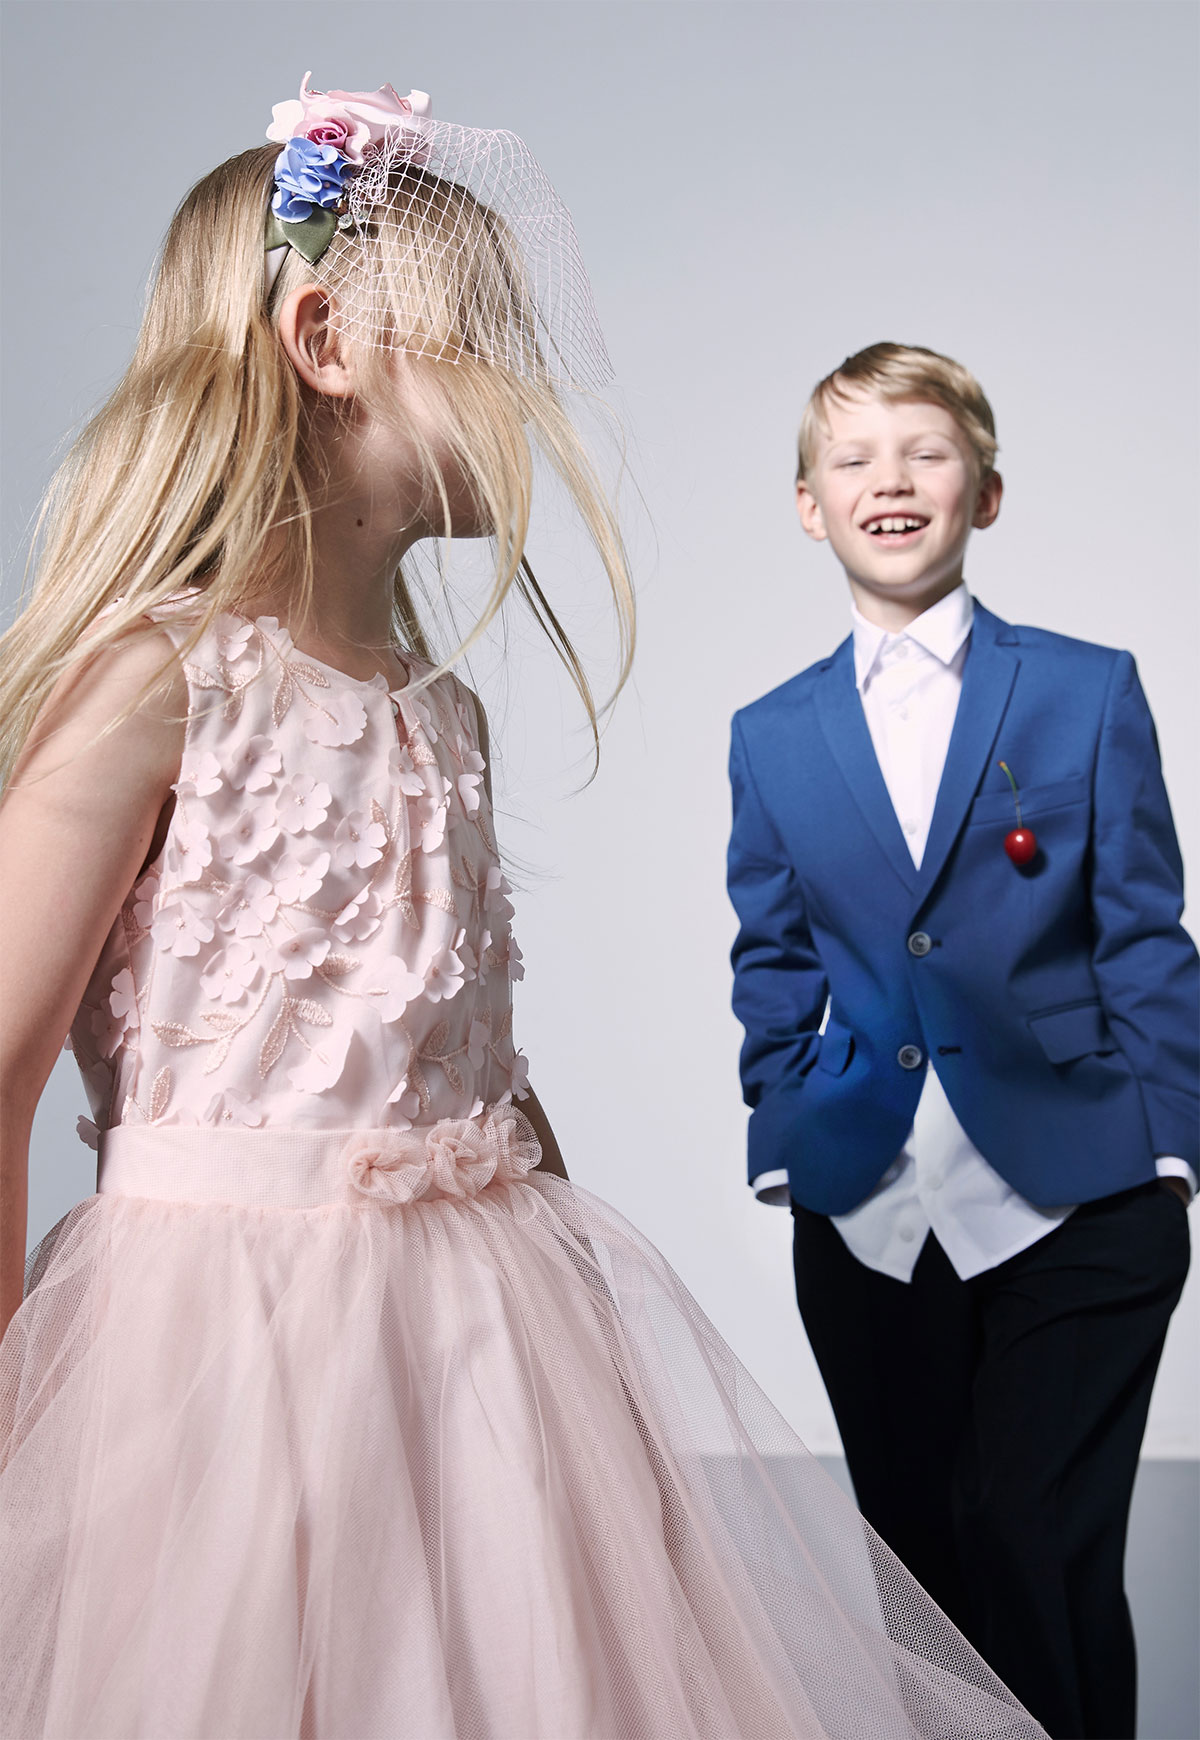 boy in suit and girl in dress